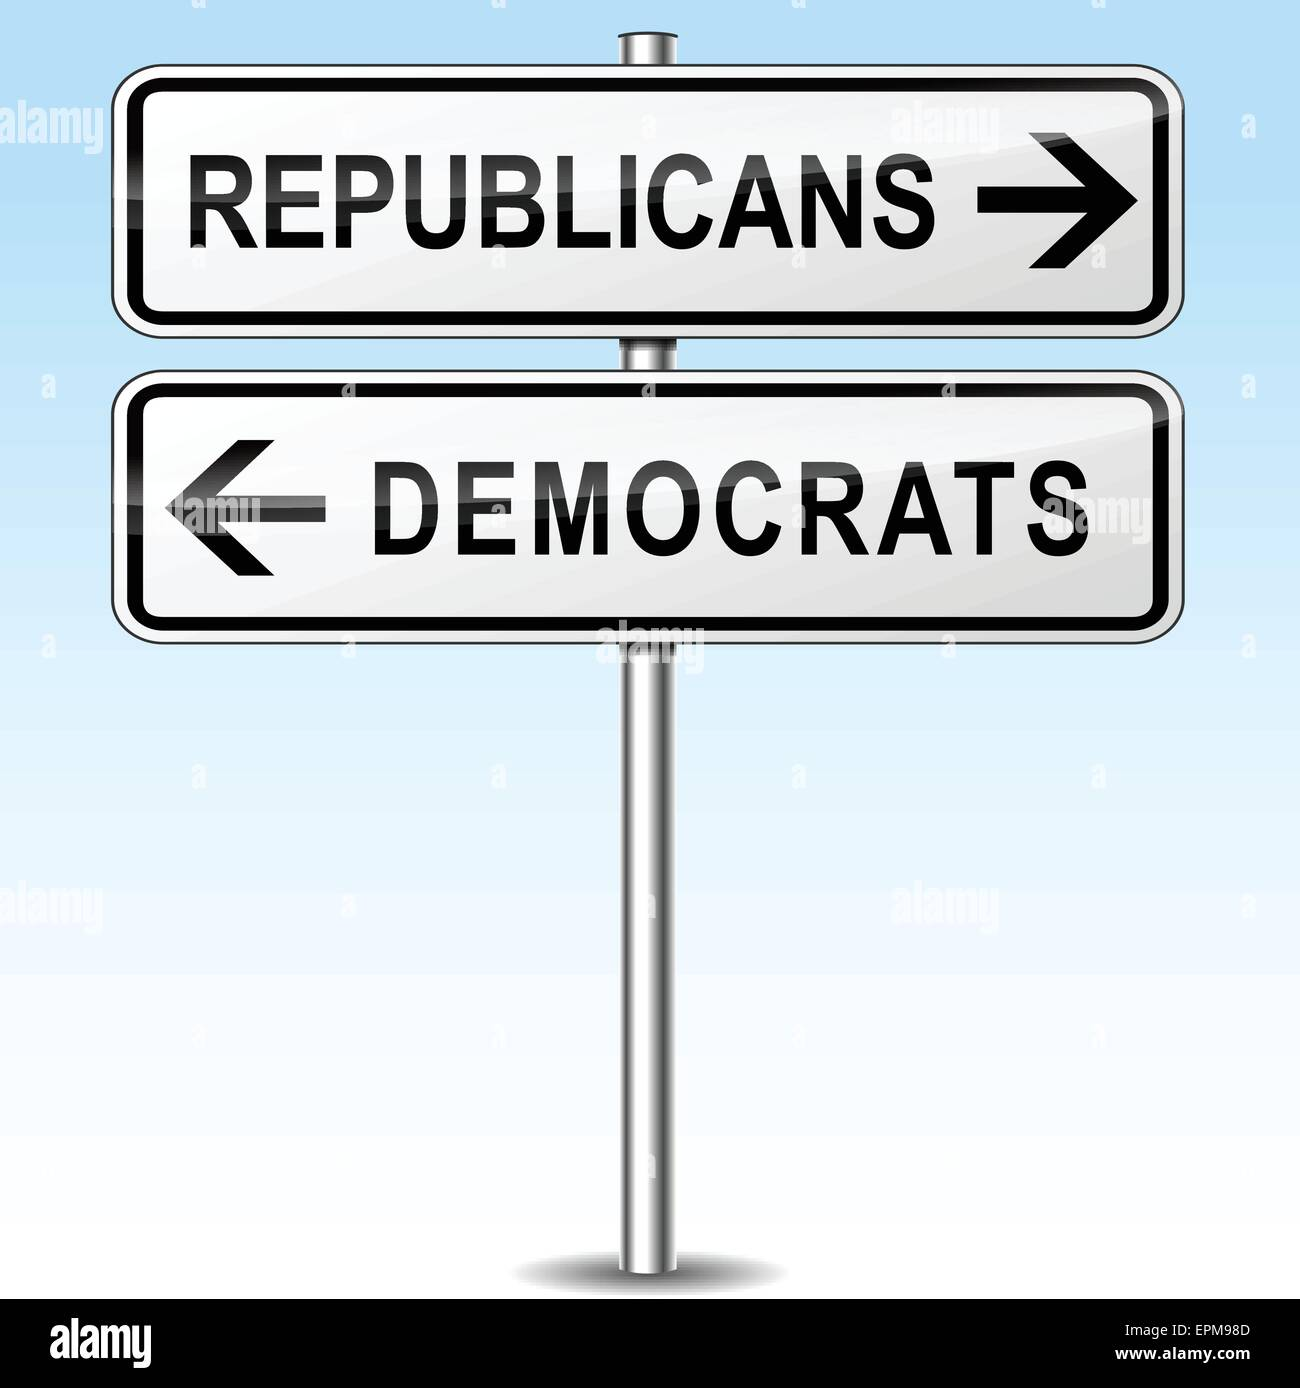 illustration of republicans and democrats directions sign - Stock Image